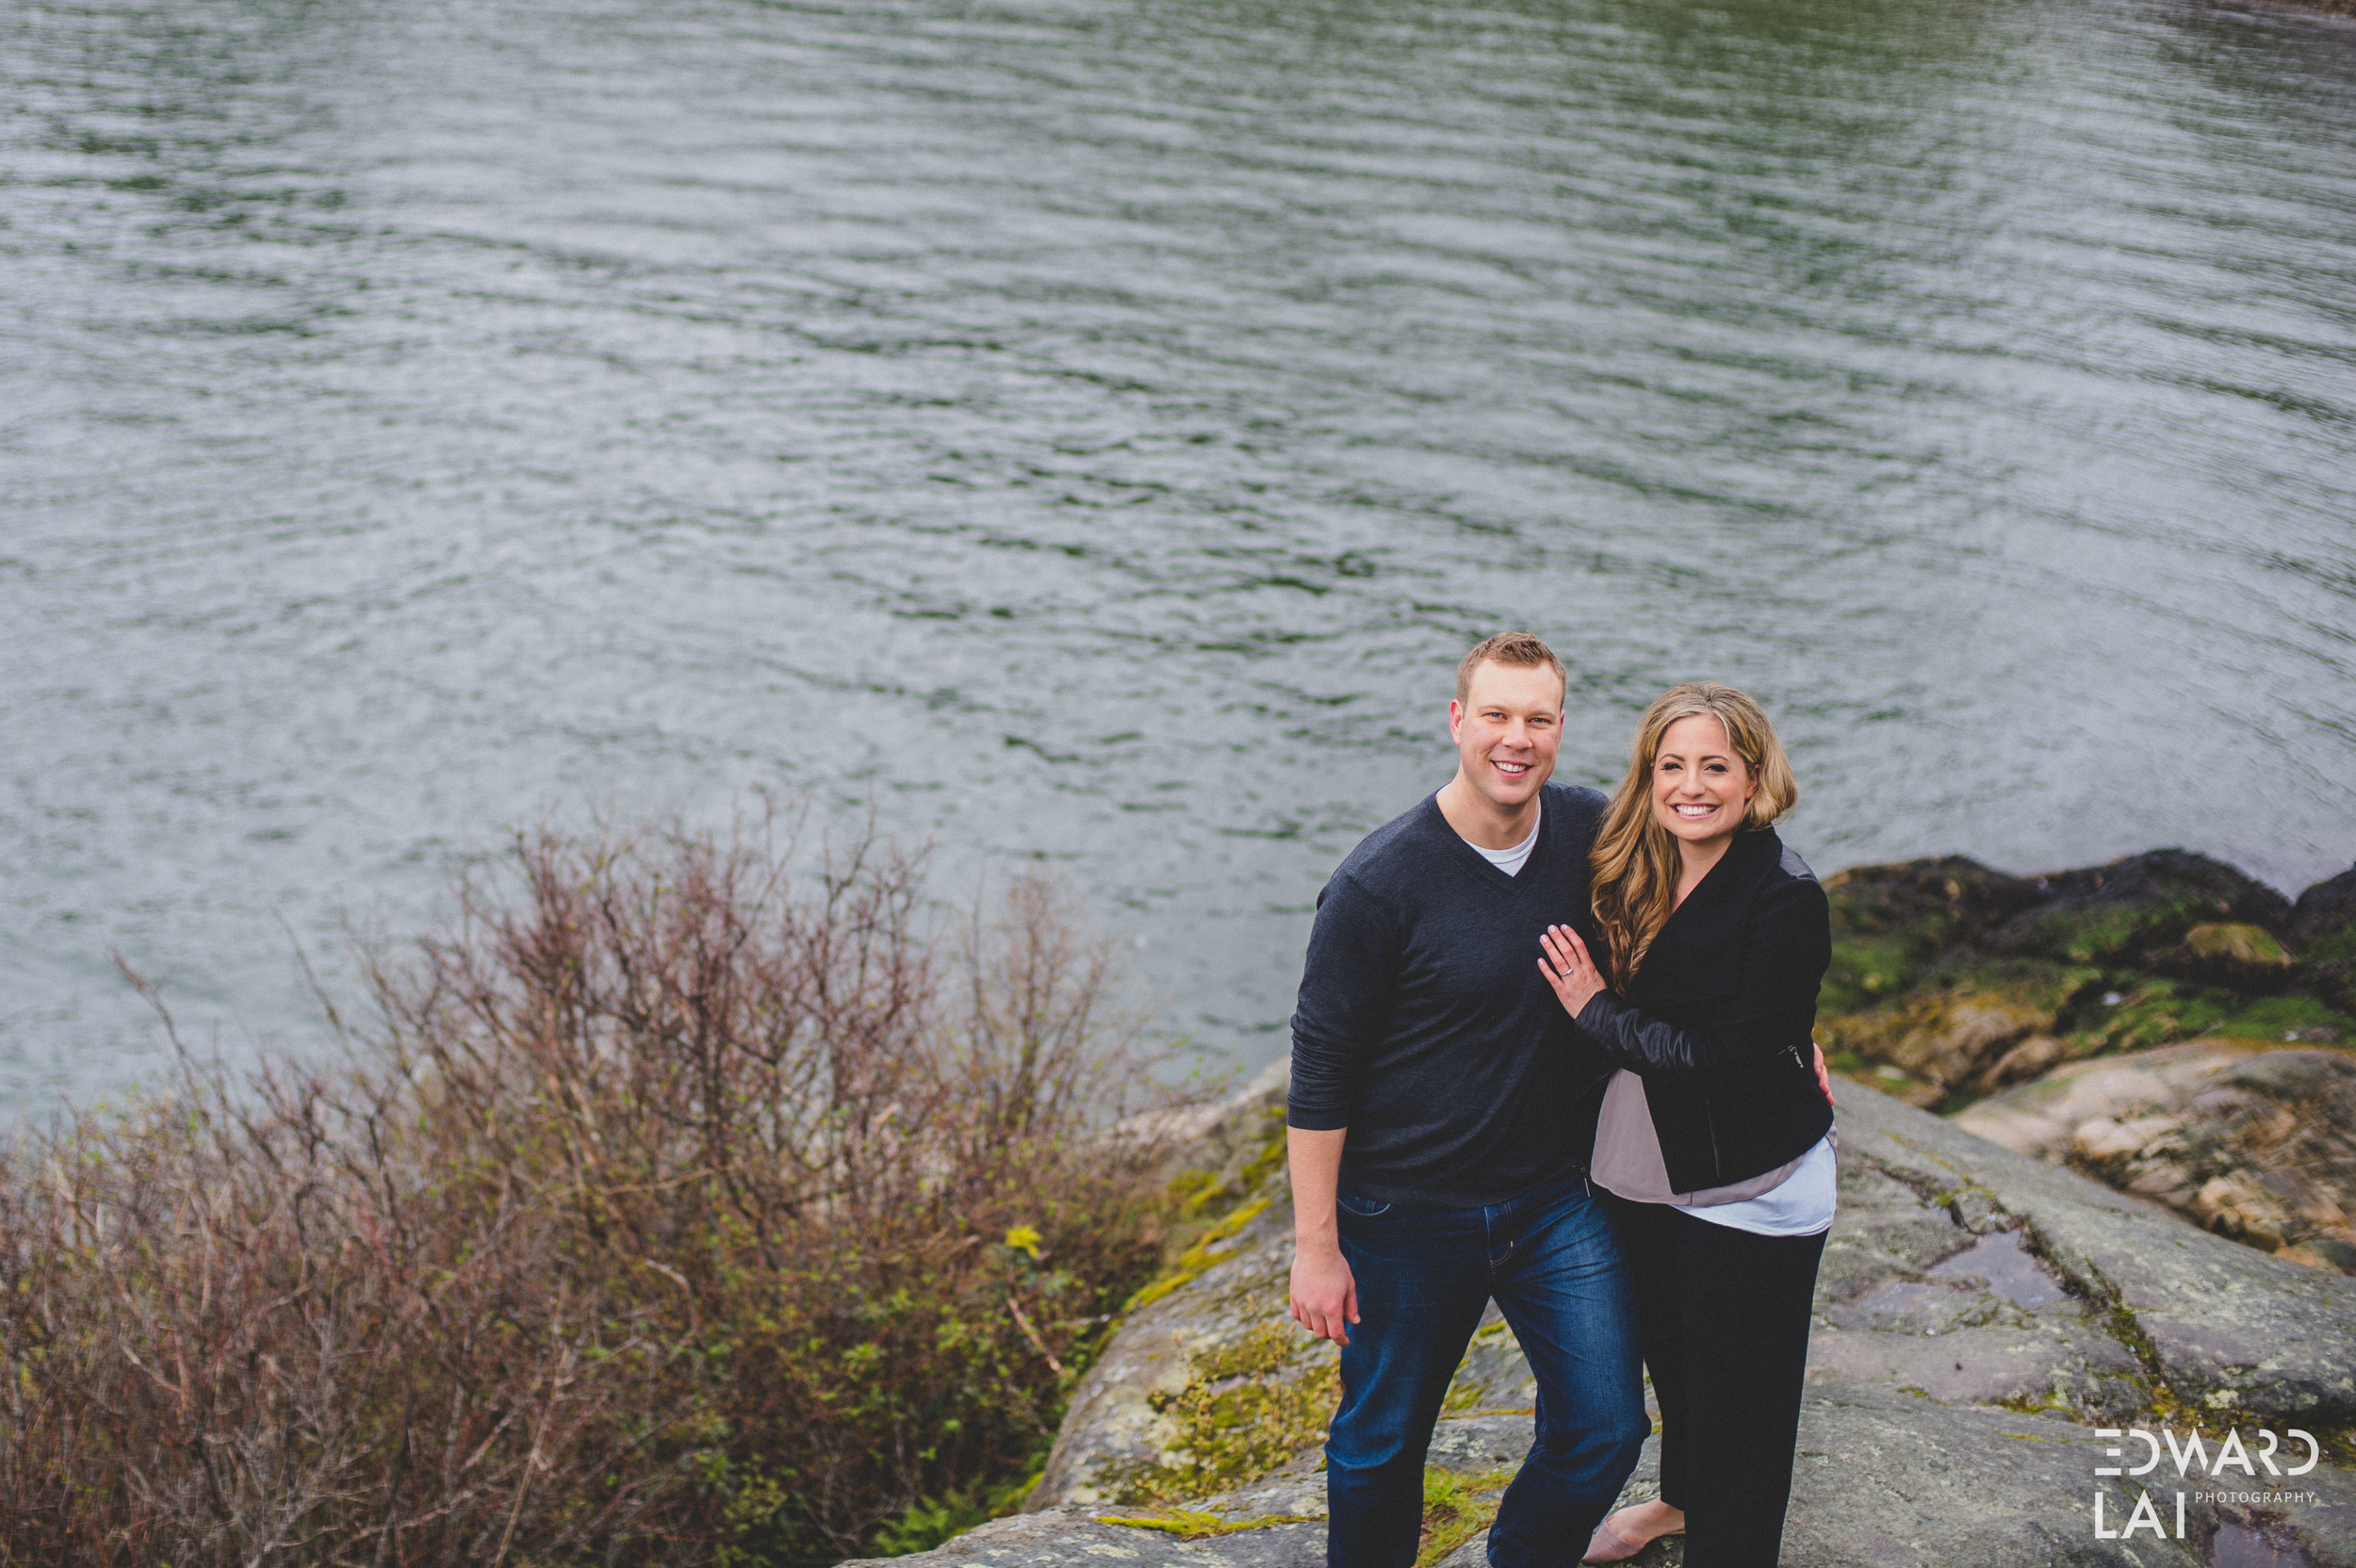 Whytecliff park Vancouver engagement photography edward lai